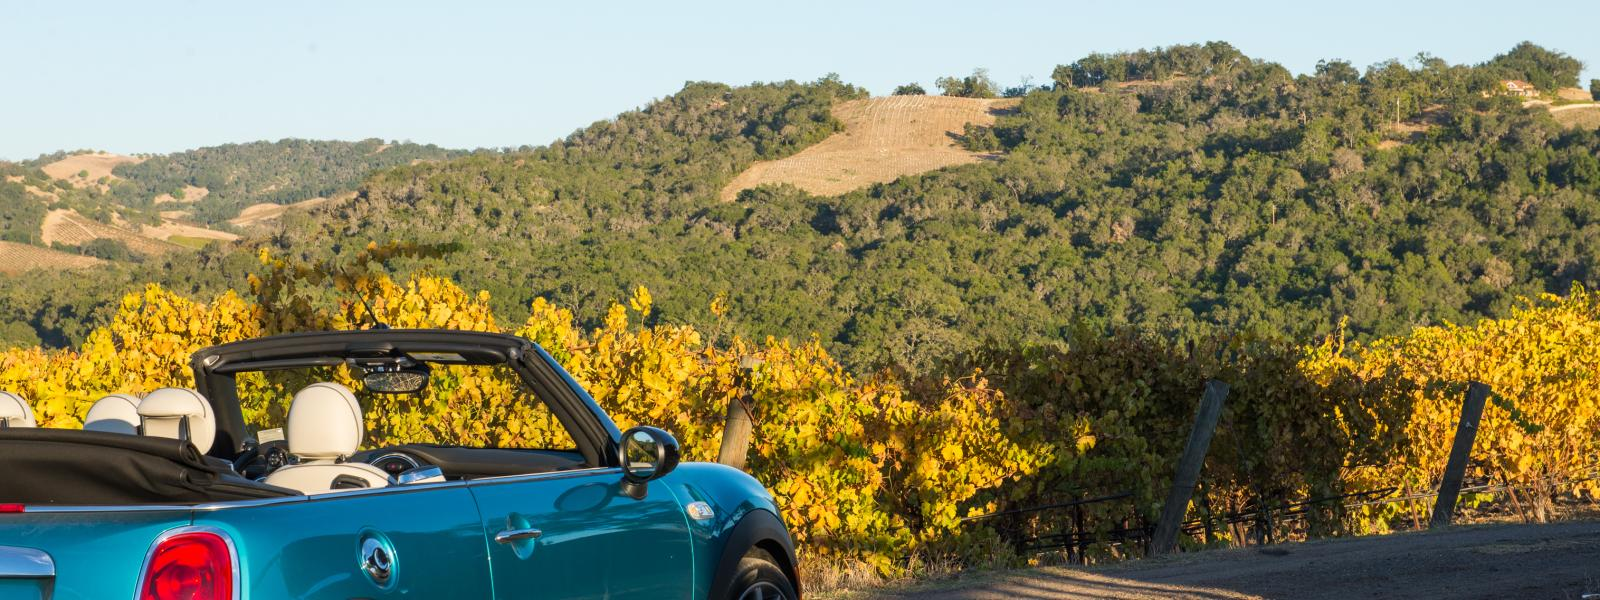 Parked along the road to enjoy the view in Paso Robles